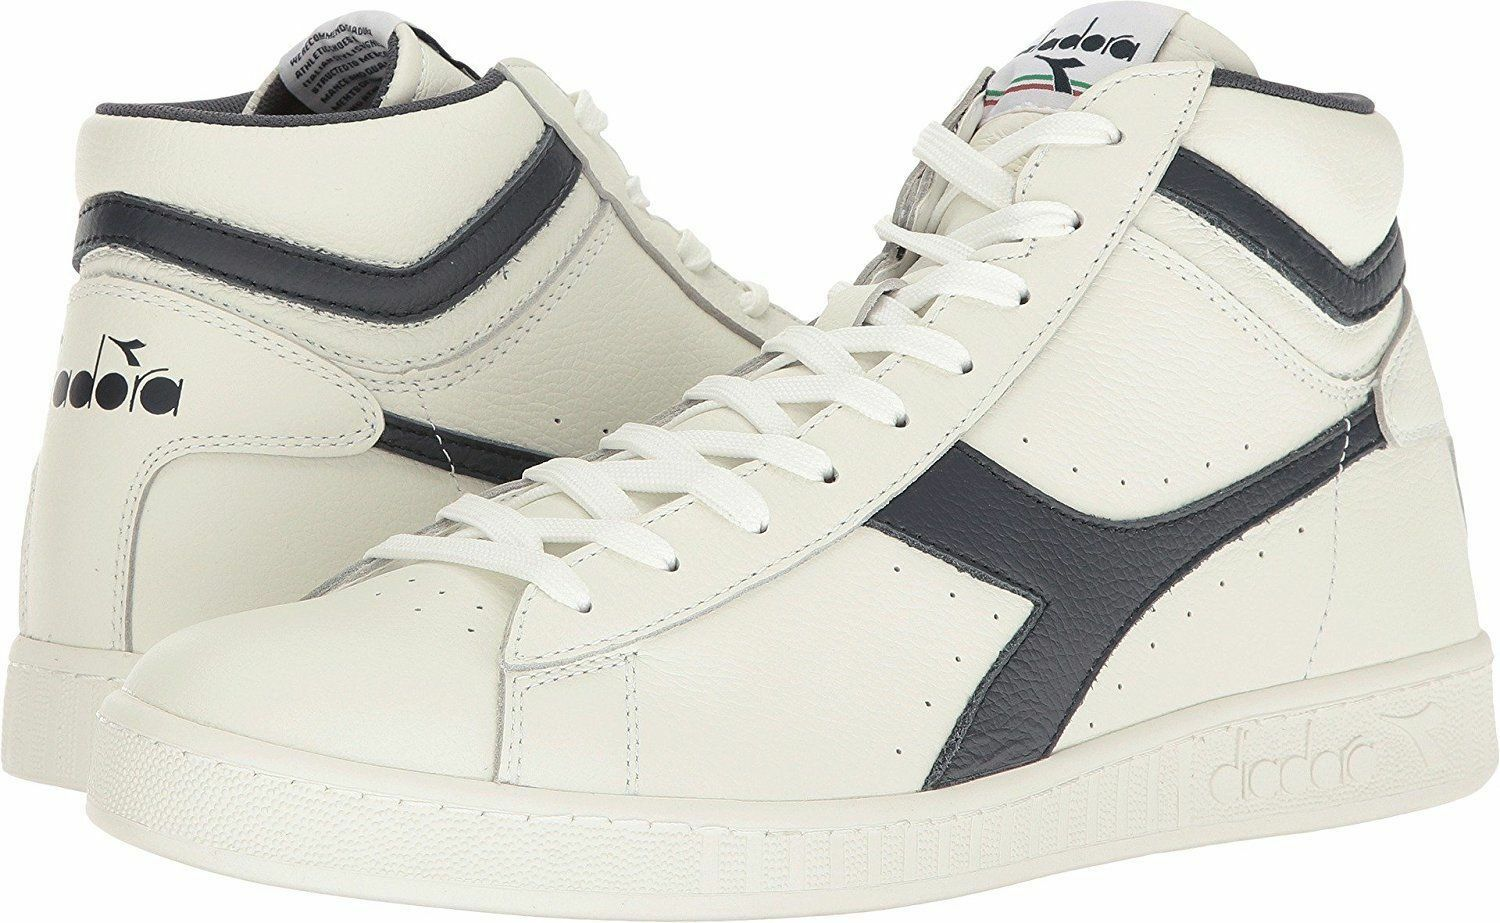 Diadora Unisex Game L High Waxed White Dress bluees White 7.5 Women  6 Men US